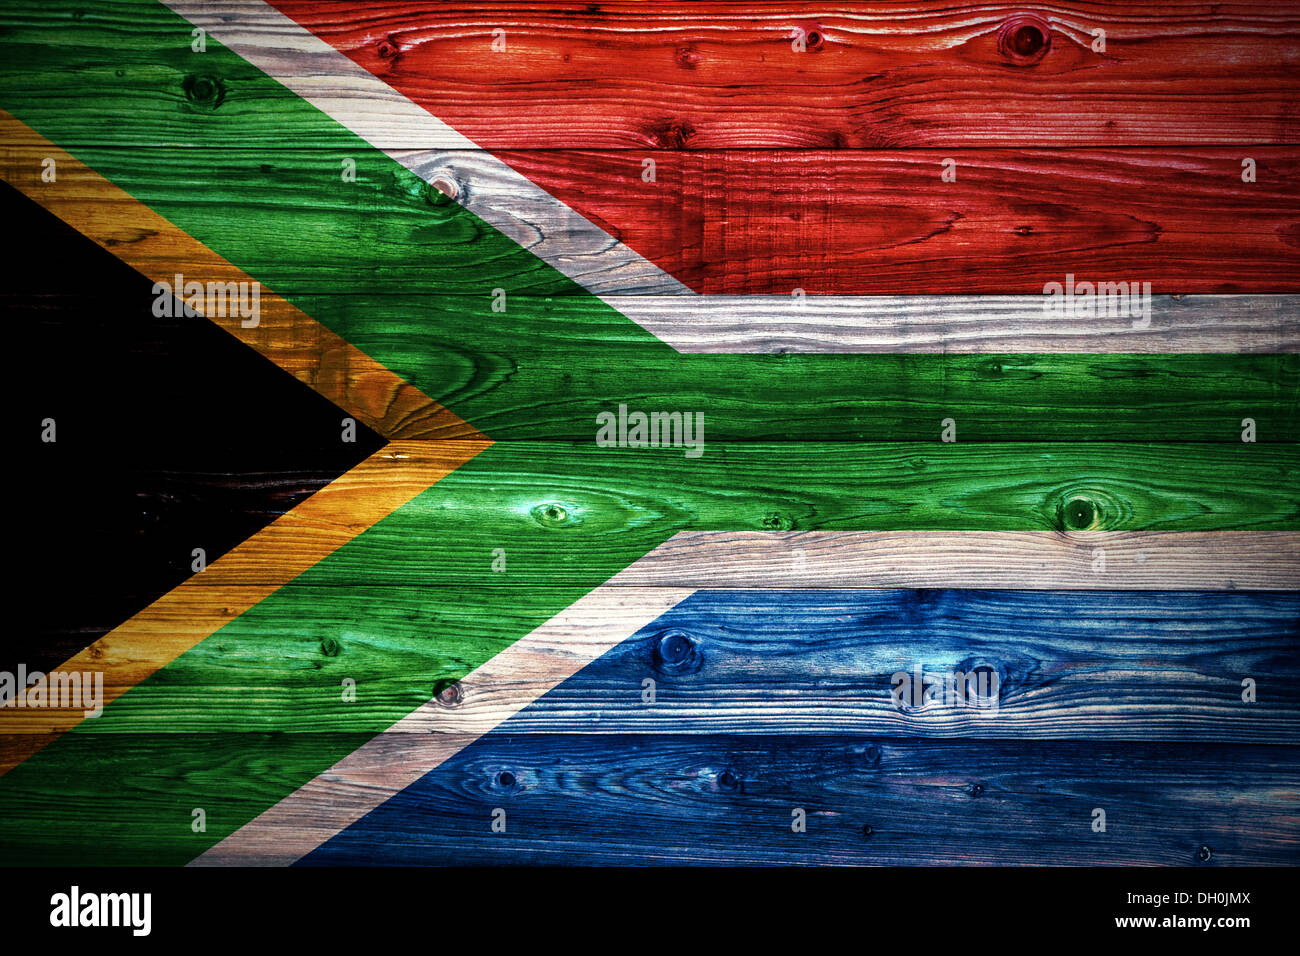 Republic of South Africa flag on a weathered natural wooden surface close-up - Stock Image